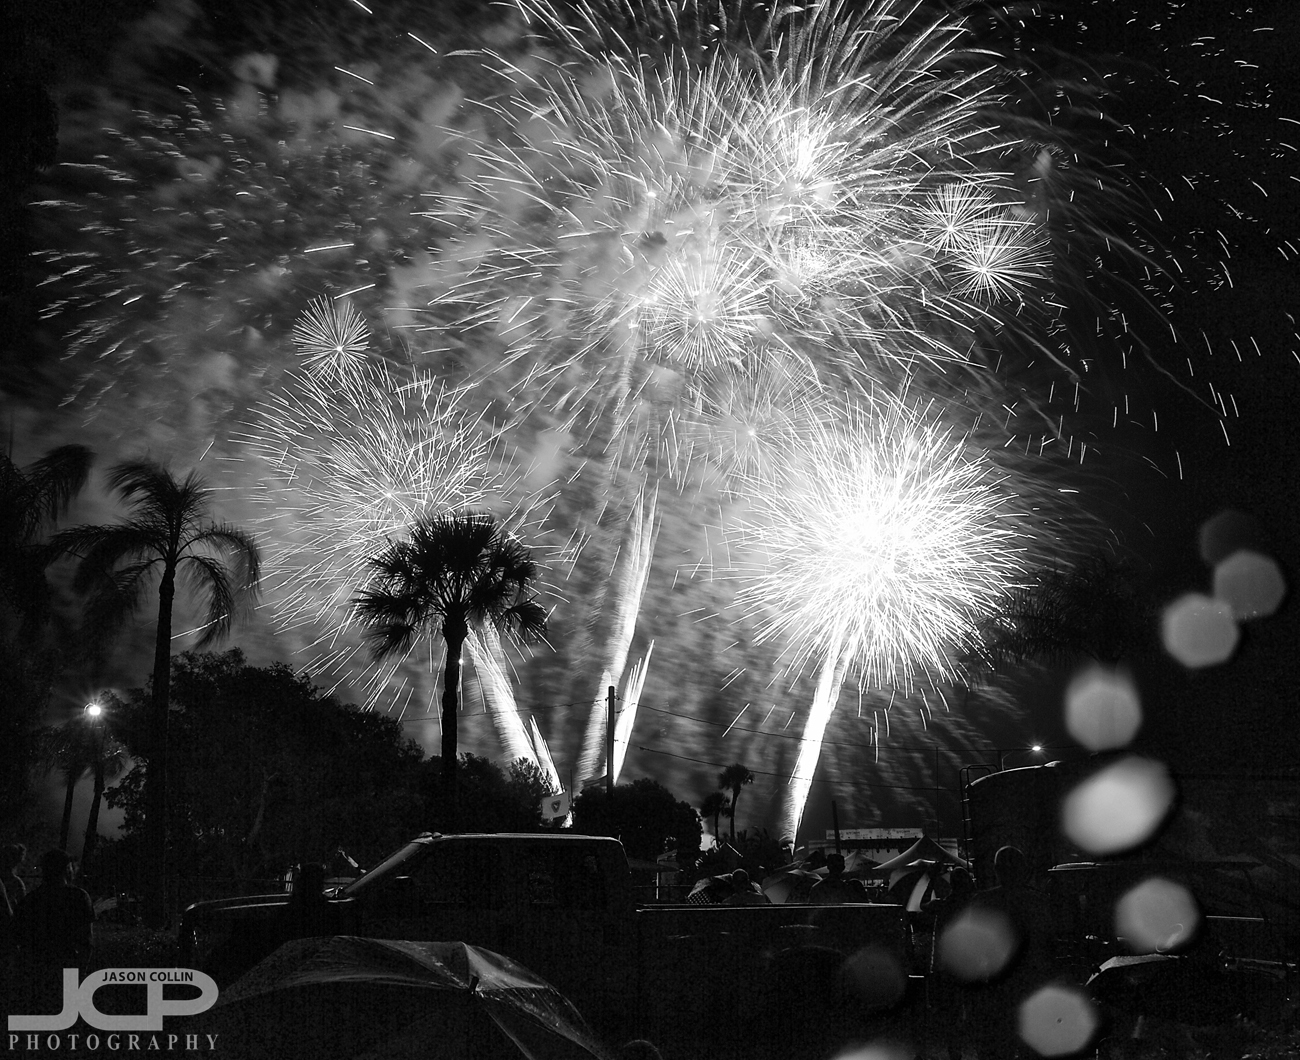 2016 Red White & Boom fireworks display in Cape Coral Florida - Nikon D300 Tamron 17-50mm @ f/11 - 1.2 sec - ISO 200 tripod mounted with cable release